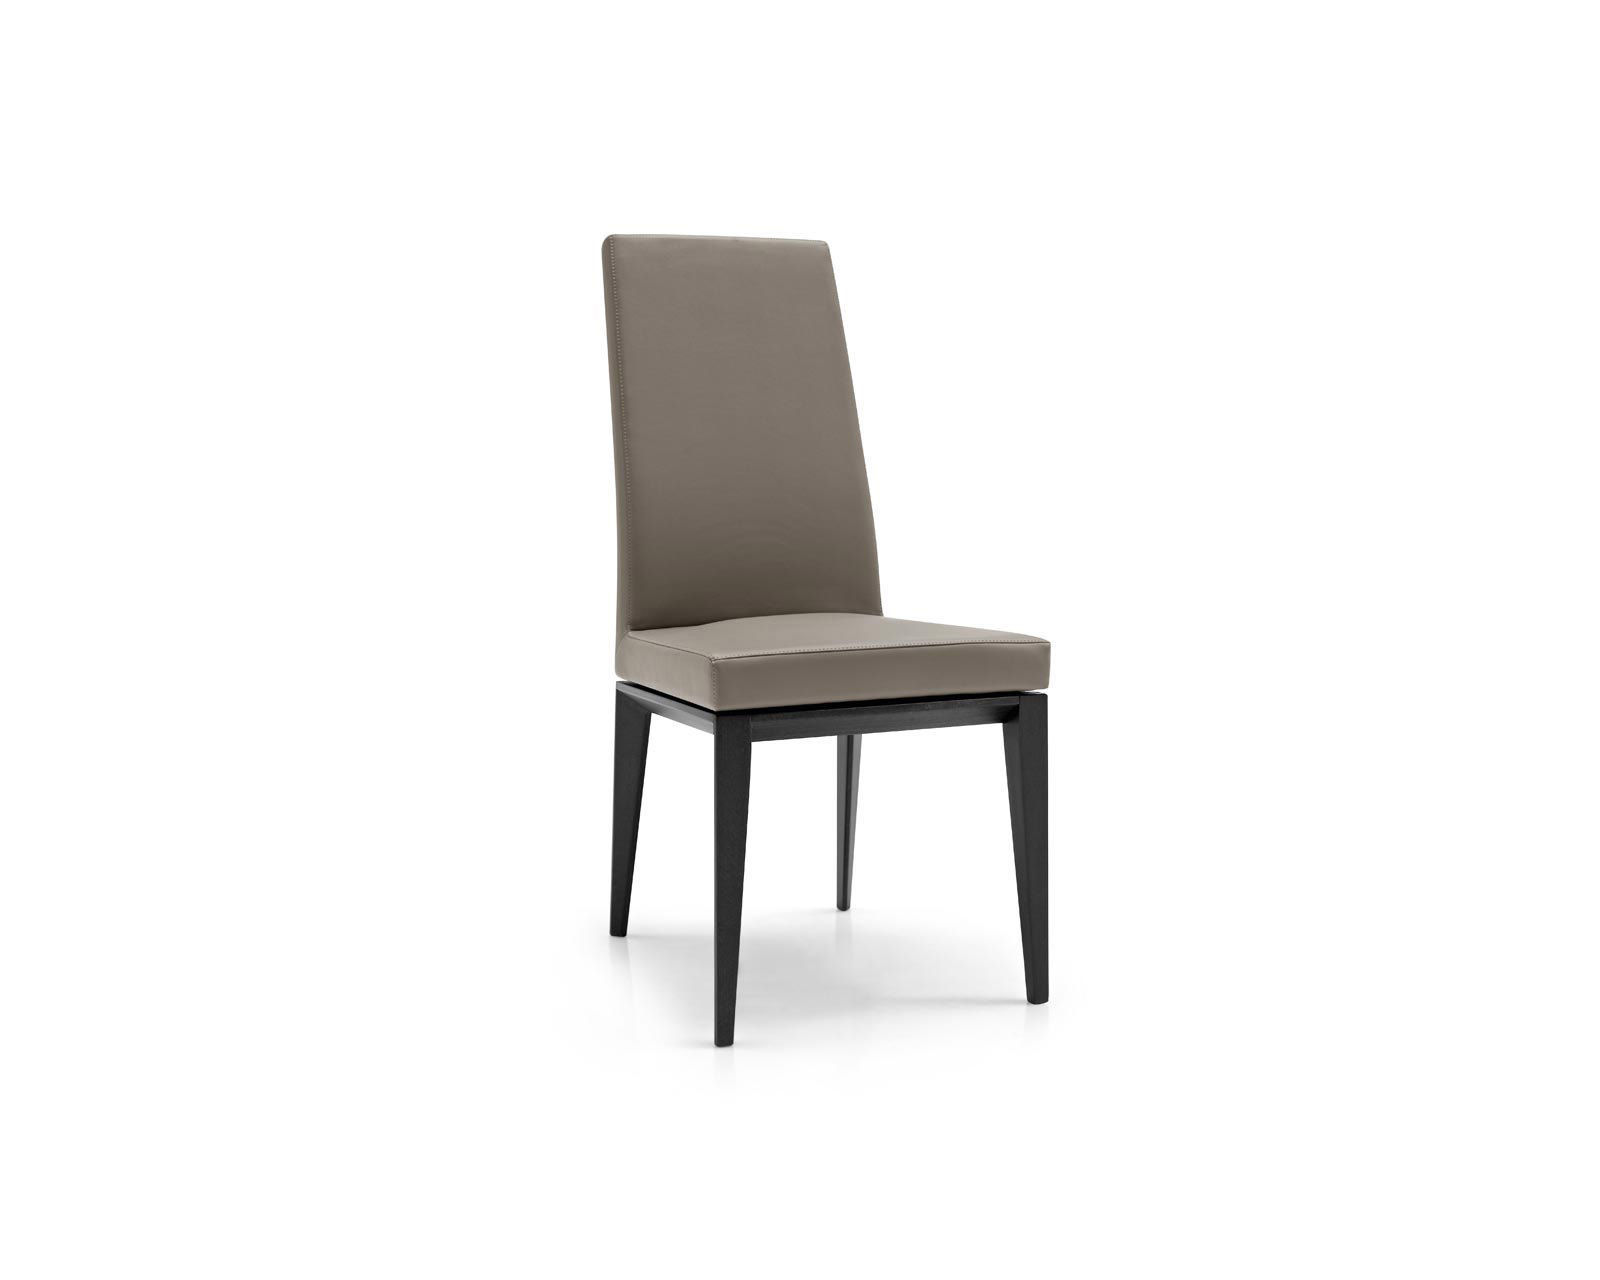 ... Contemporary Chair / With Armrests / Upholstered / High Back